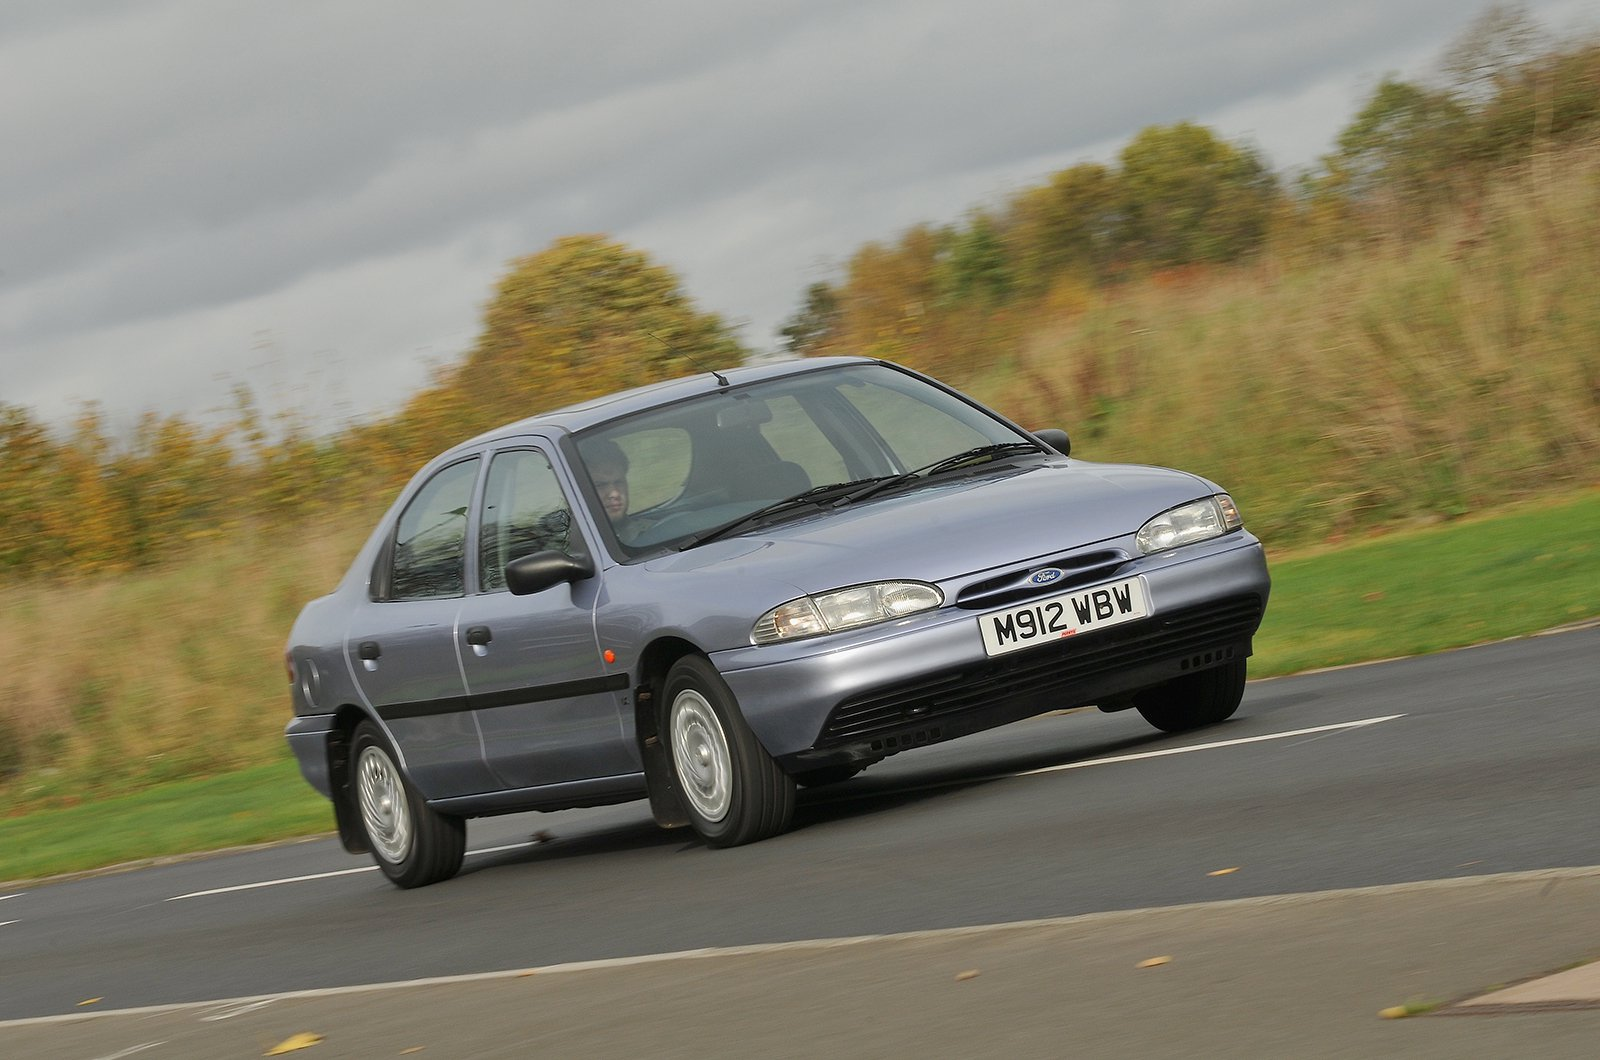 Ford Mondeo 1.8 GLX front three quarters